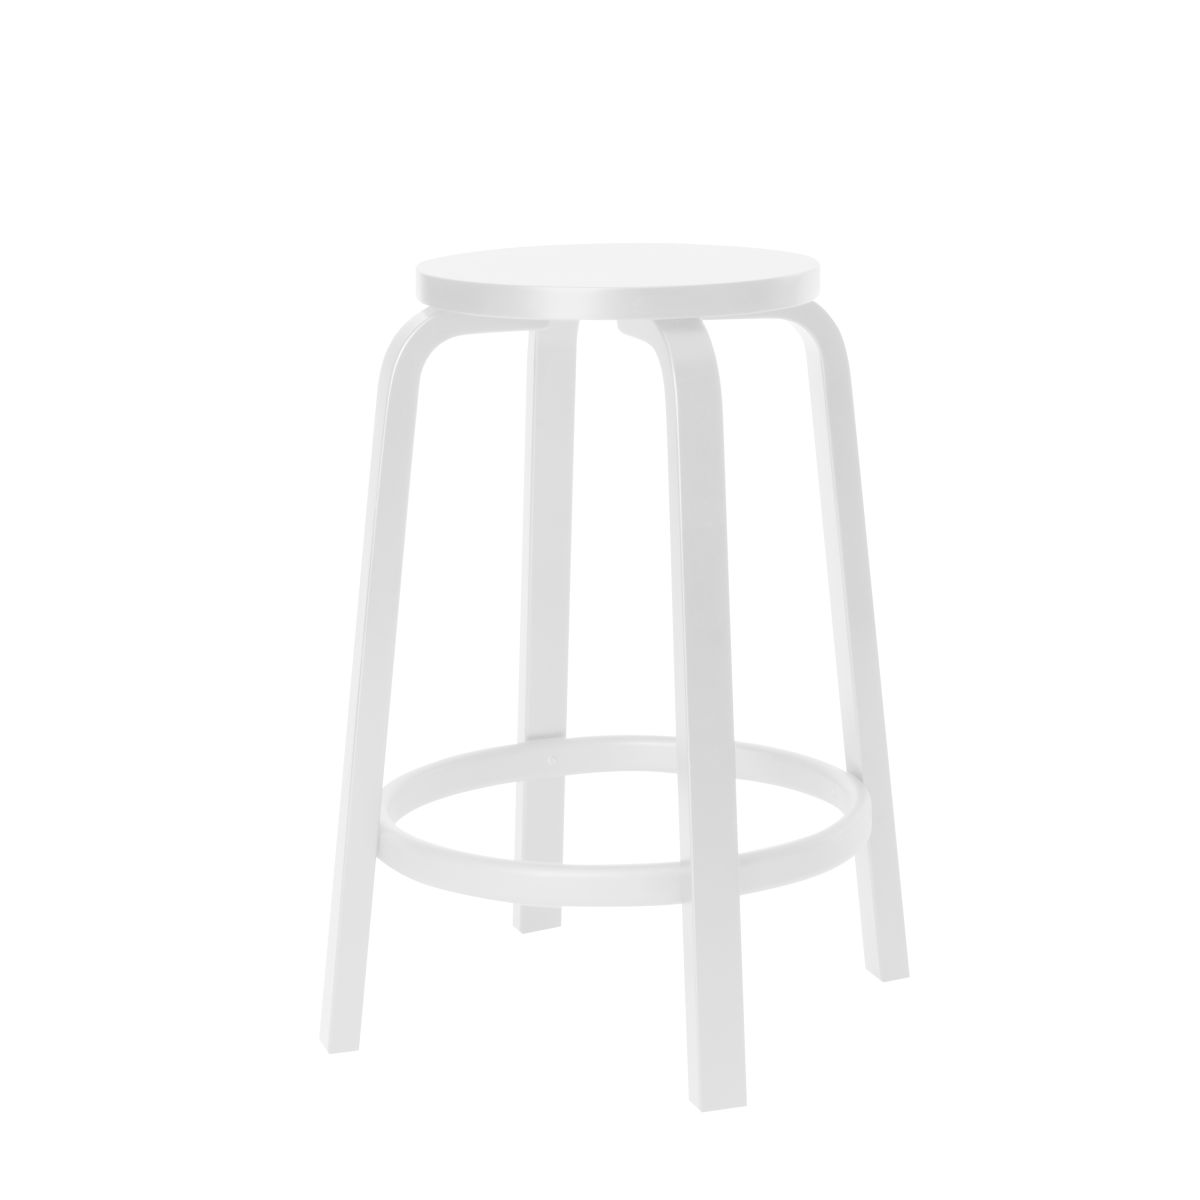 Bar-Stool-64-65Cm-Legs-White-Laquered_Top-White-Laquered_Srgb-2430522